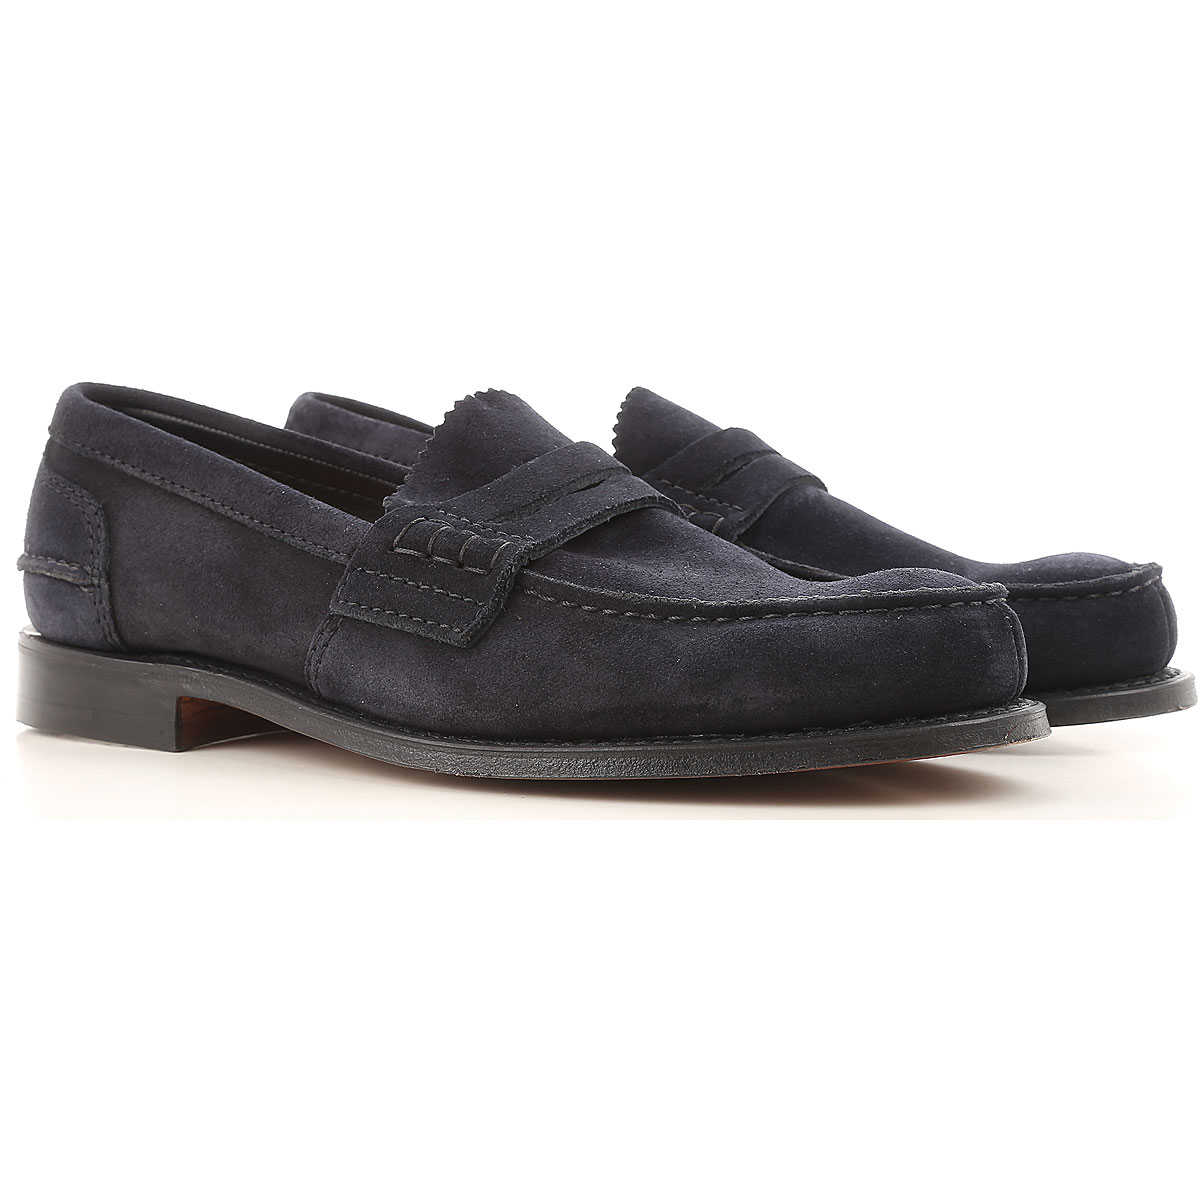 Church's Loafers for Men Midnight Blue USA - GOOFASH